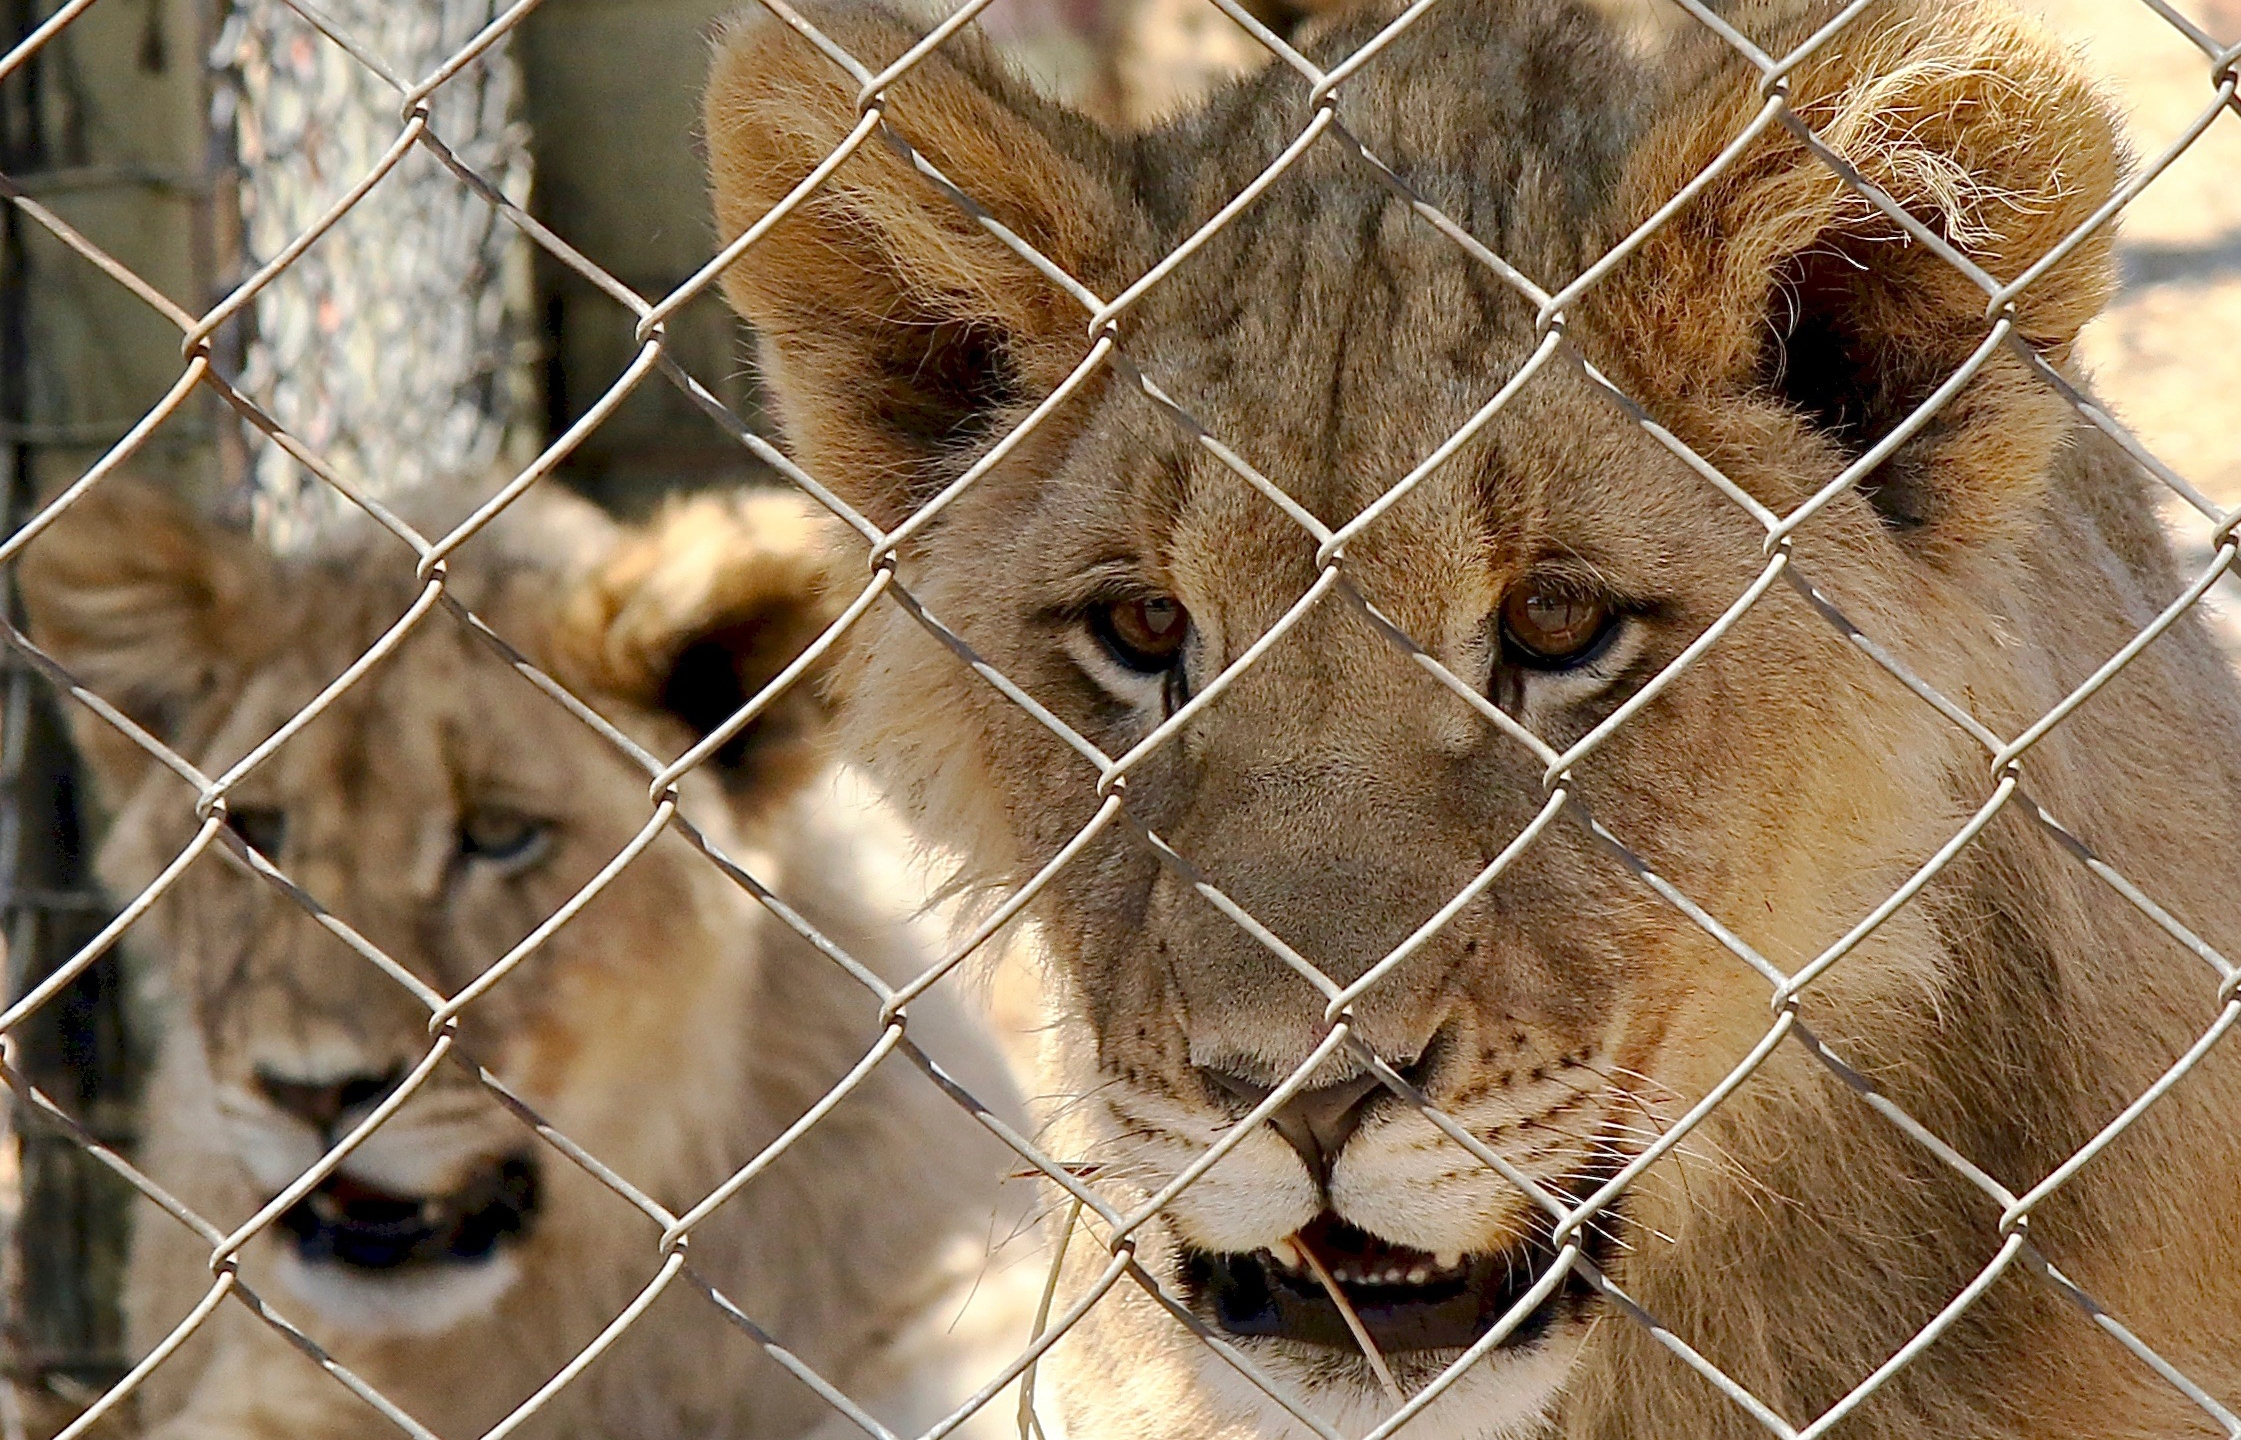 South Africa says it will end its captive lion industry